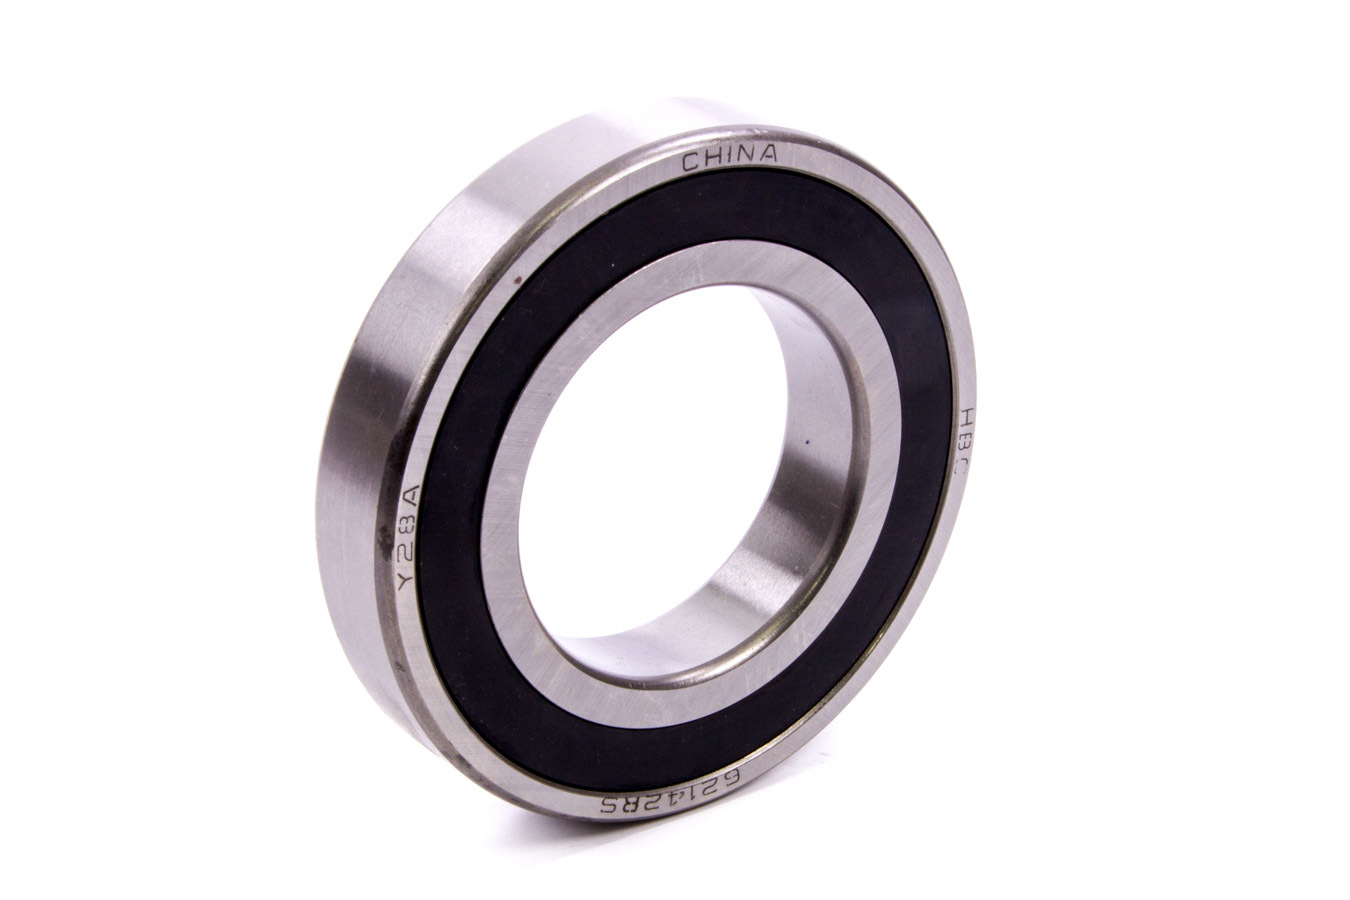 M & W Aluminum Products 6214-2RS Birdcage Bearing, 2.750 in ID, 4.930 in OD, 24 mm Wide, Single Row, Steel, M and W Aluminum Birdcage, Each